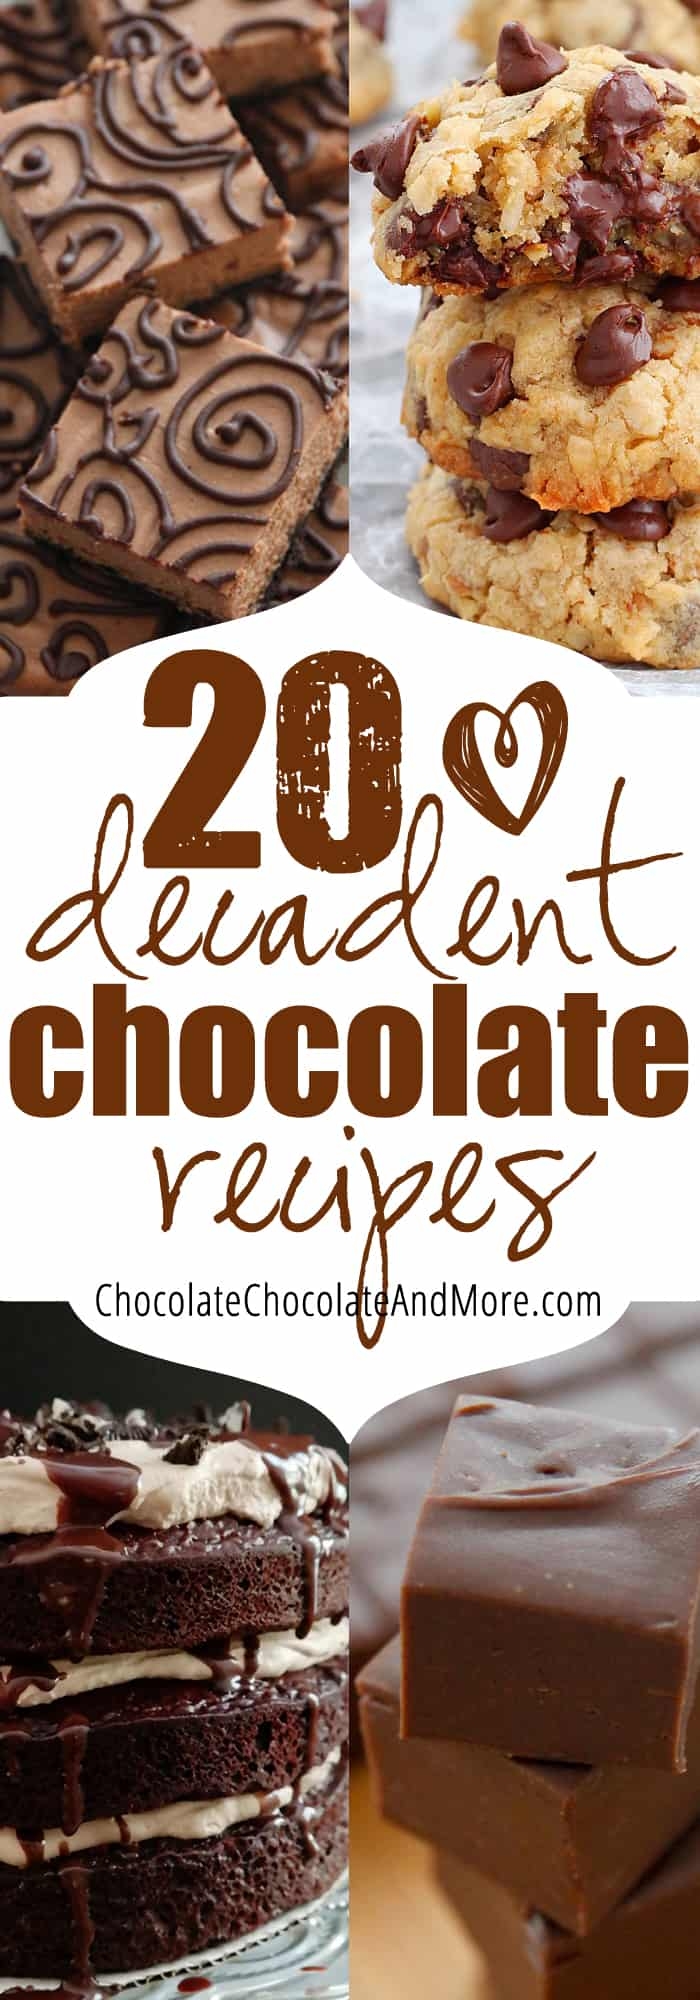 20 Decadent Chocolate Recipes by ChocolateChocolateAndMore.com Collage with Text Overlay